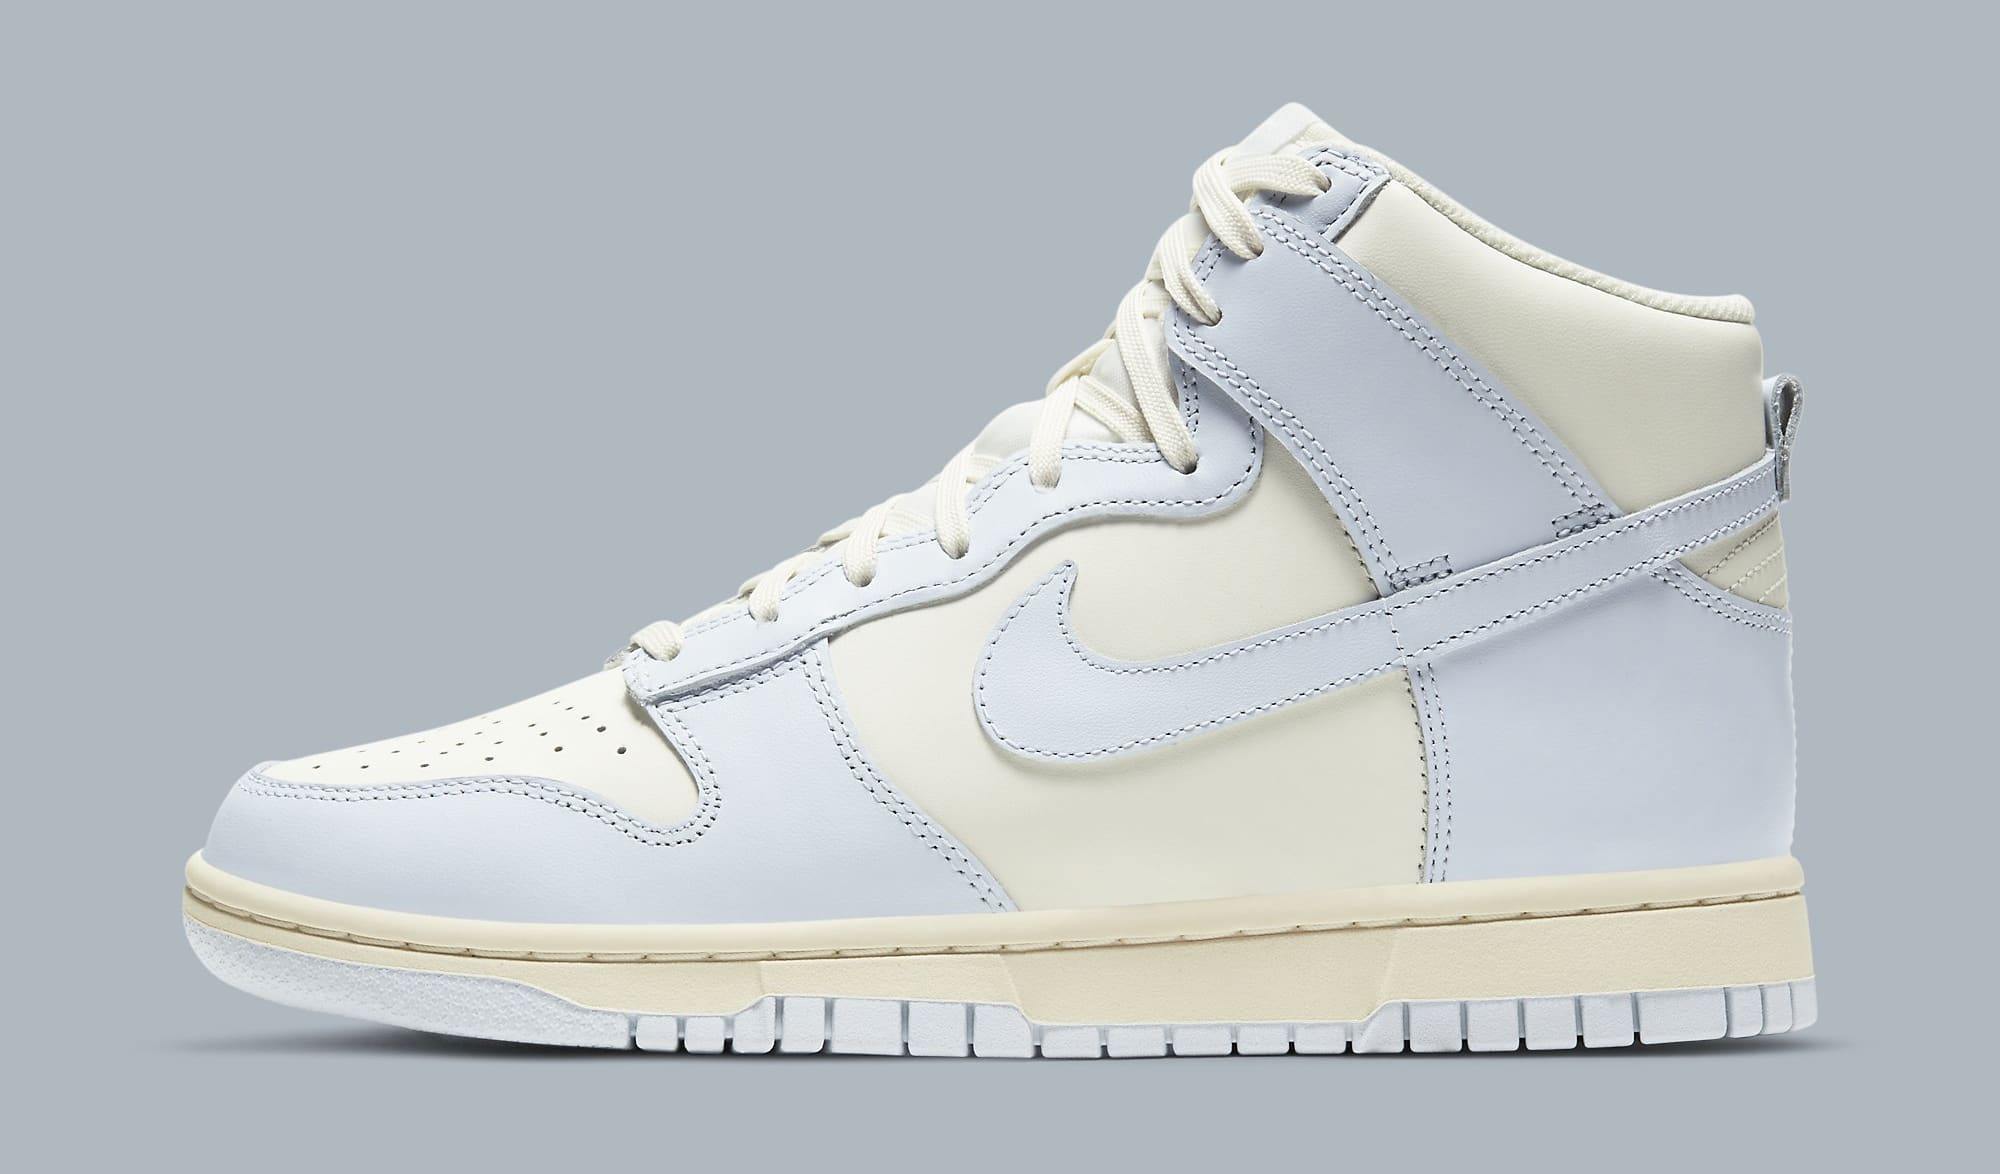 Nike Dunk High Women's 'Pale Ivory' DD1869-102 Lateral